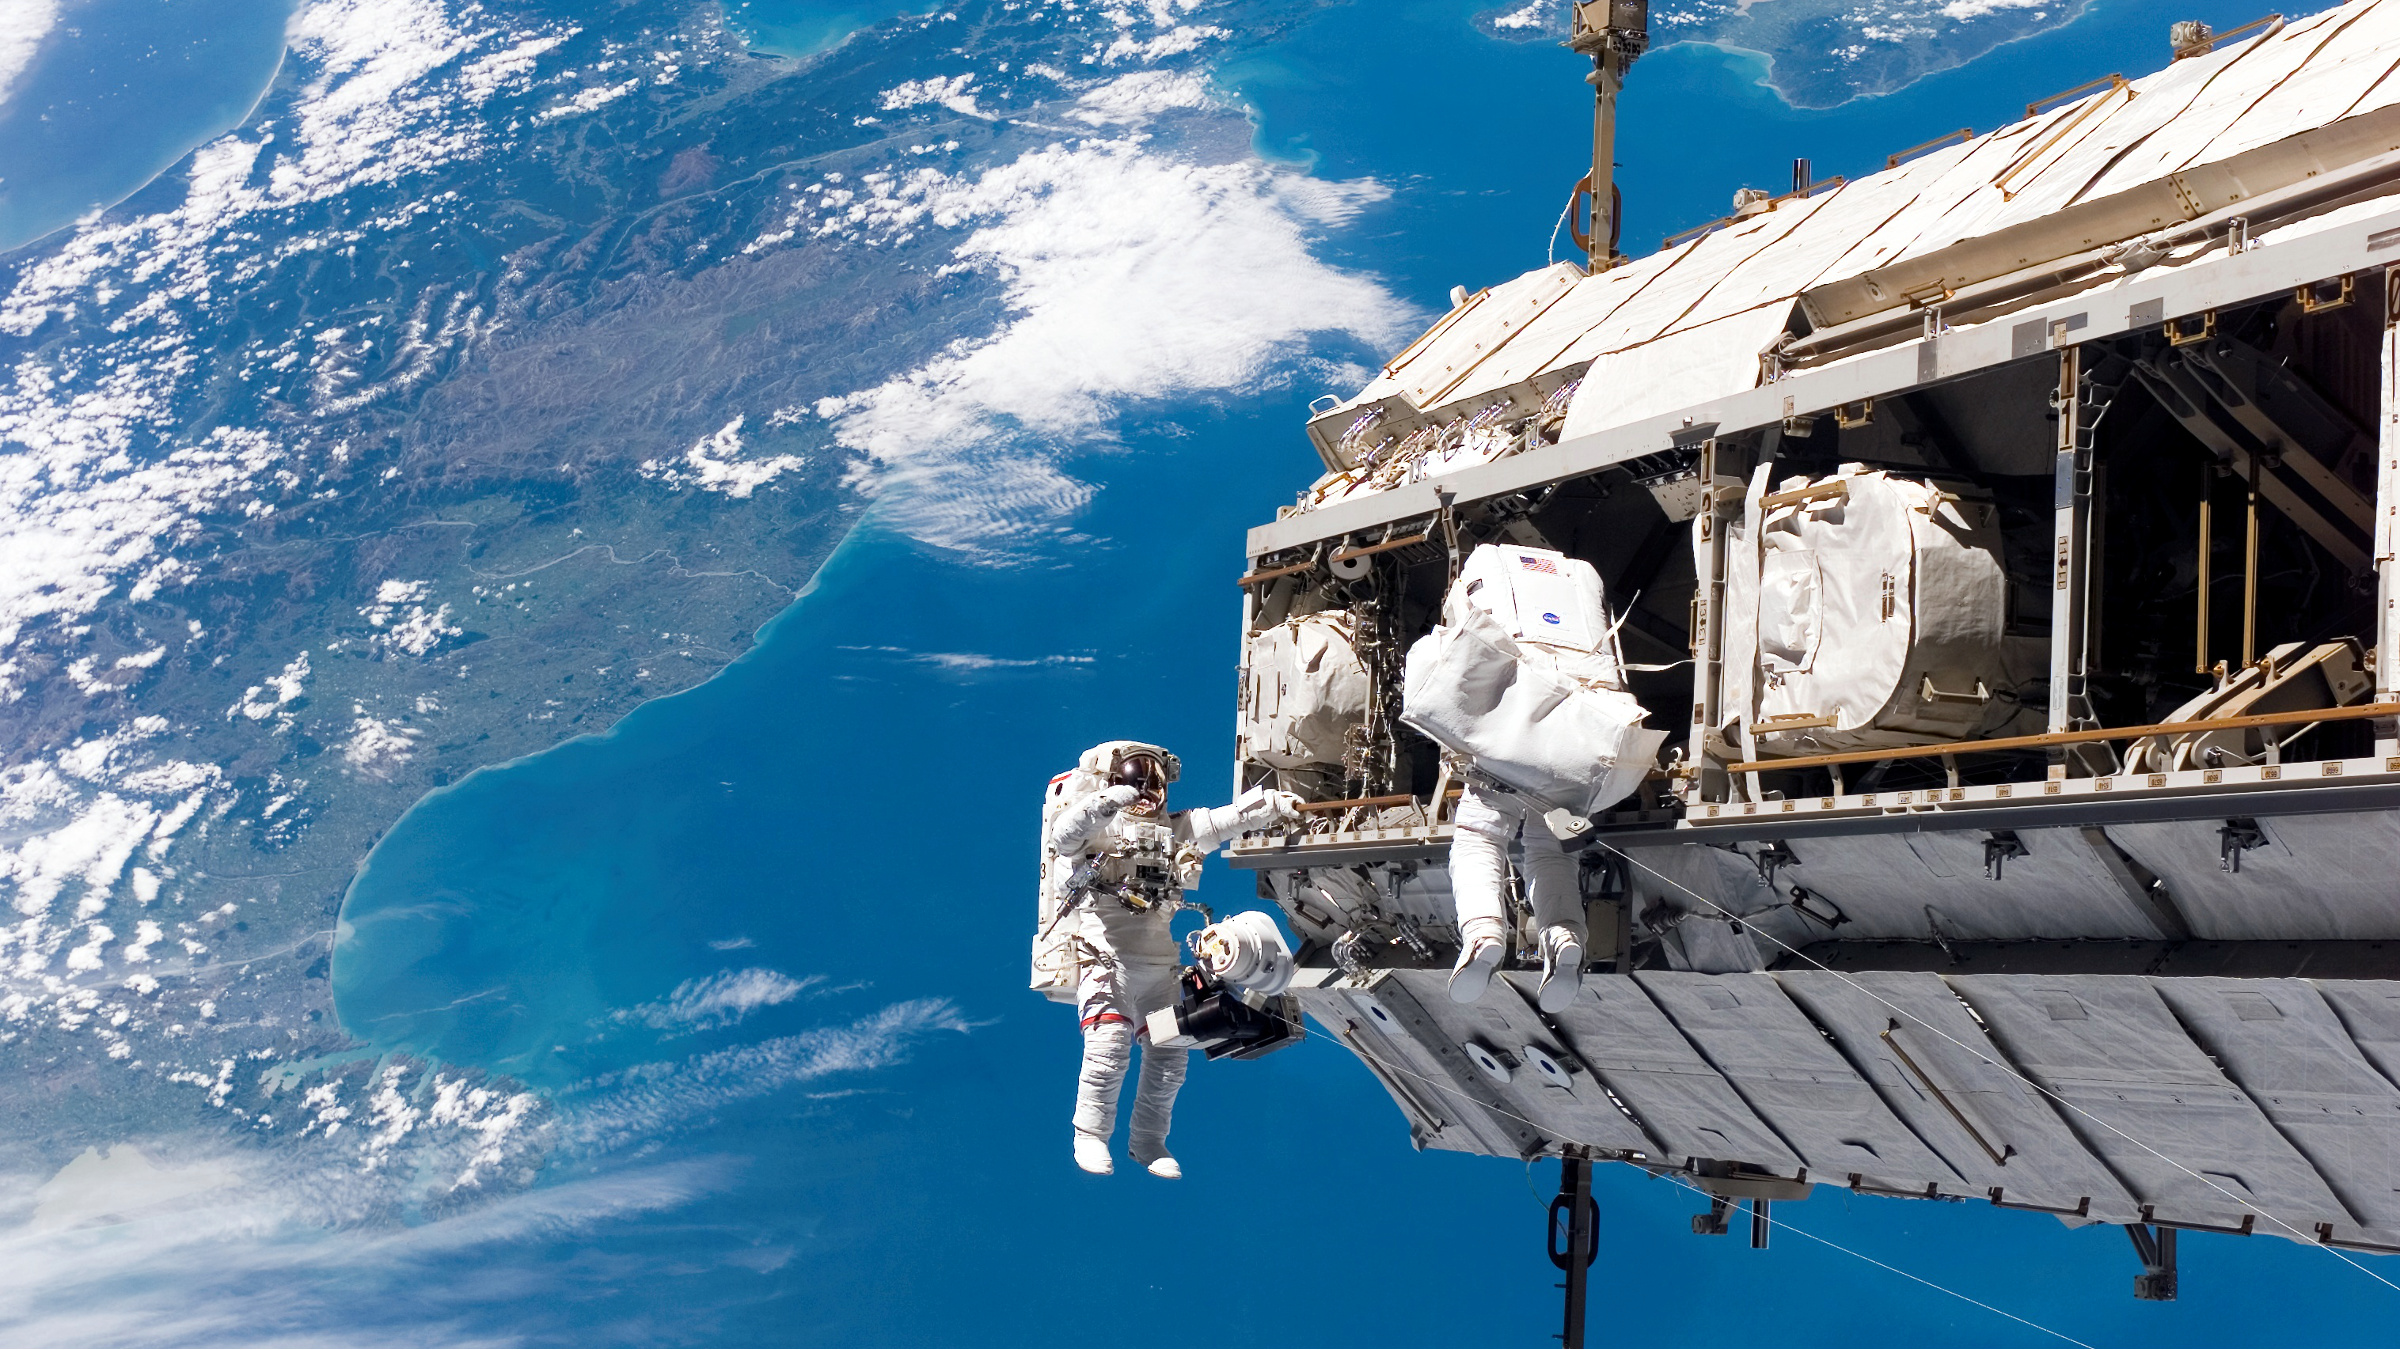 Two astronauts construct the International Space Station over New Zealand in 2006.